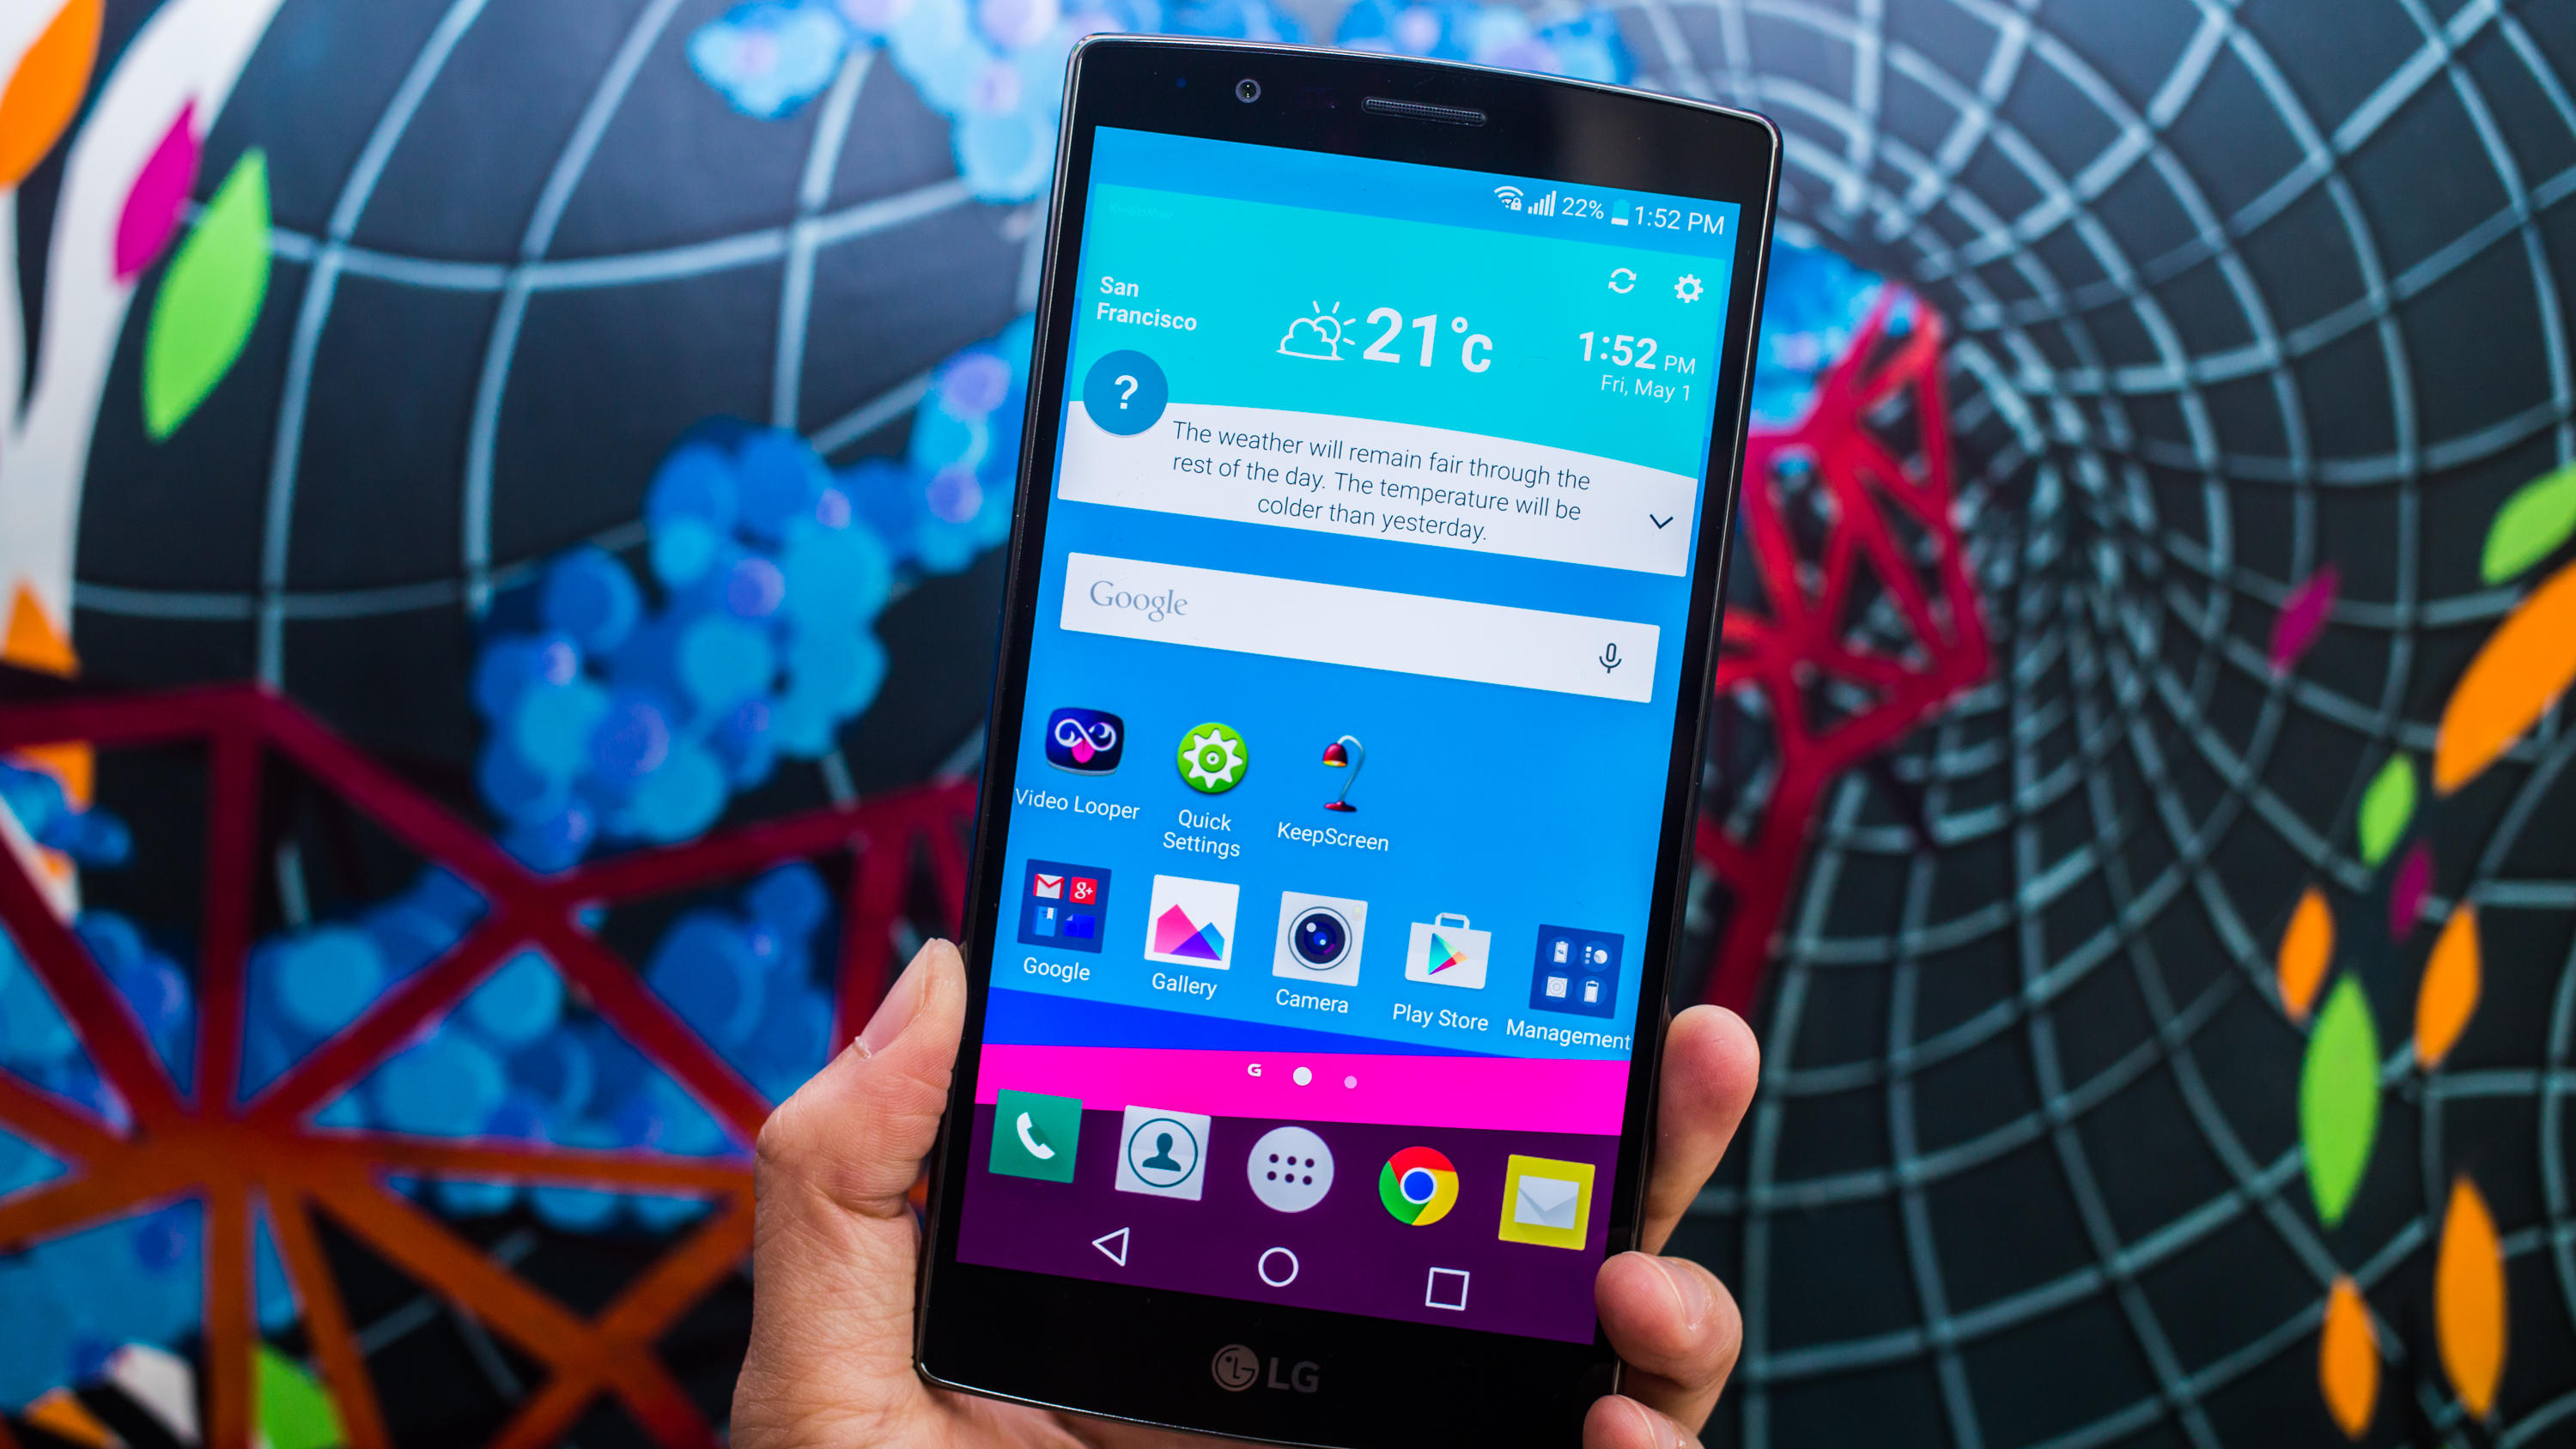 #1 in Our List of the Best LG G4 Features – Super Crisp Display